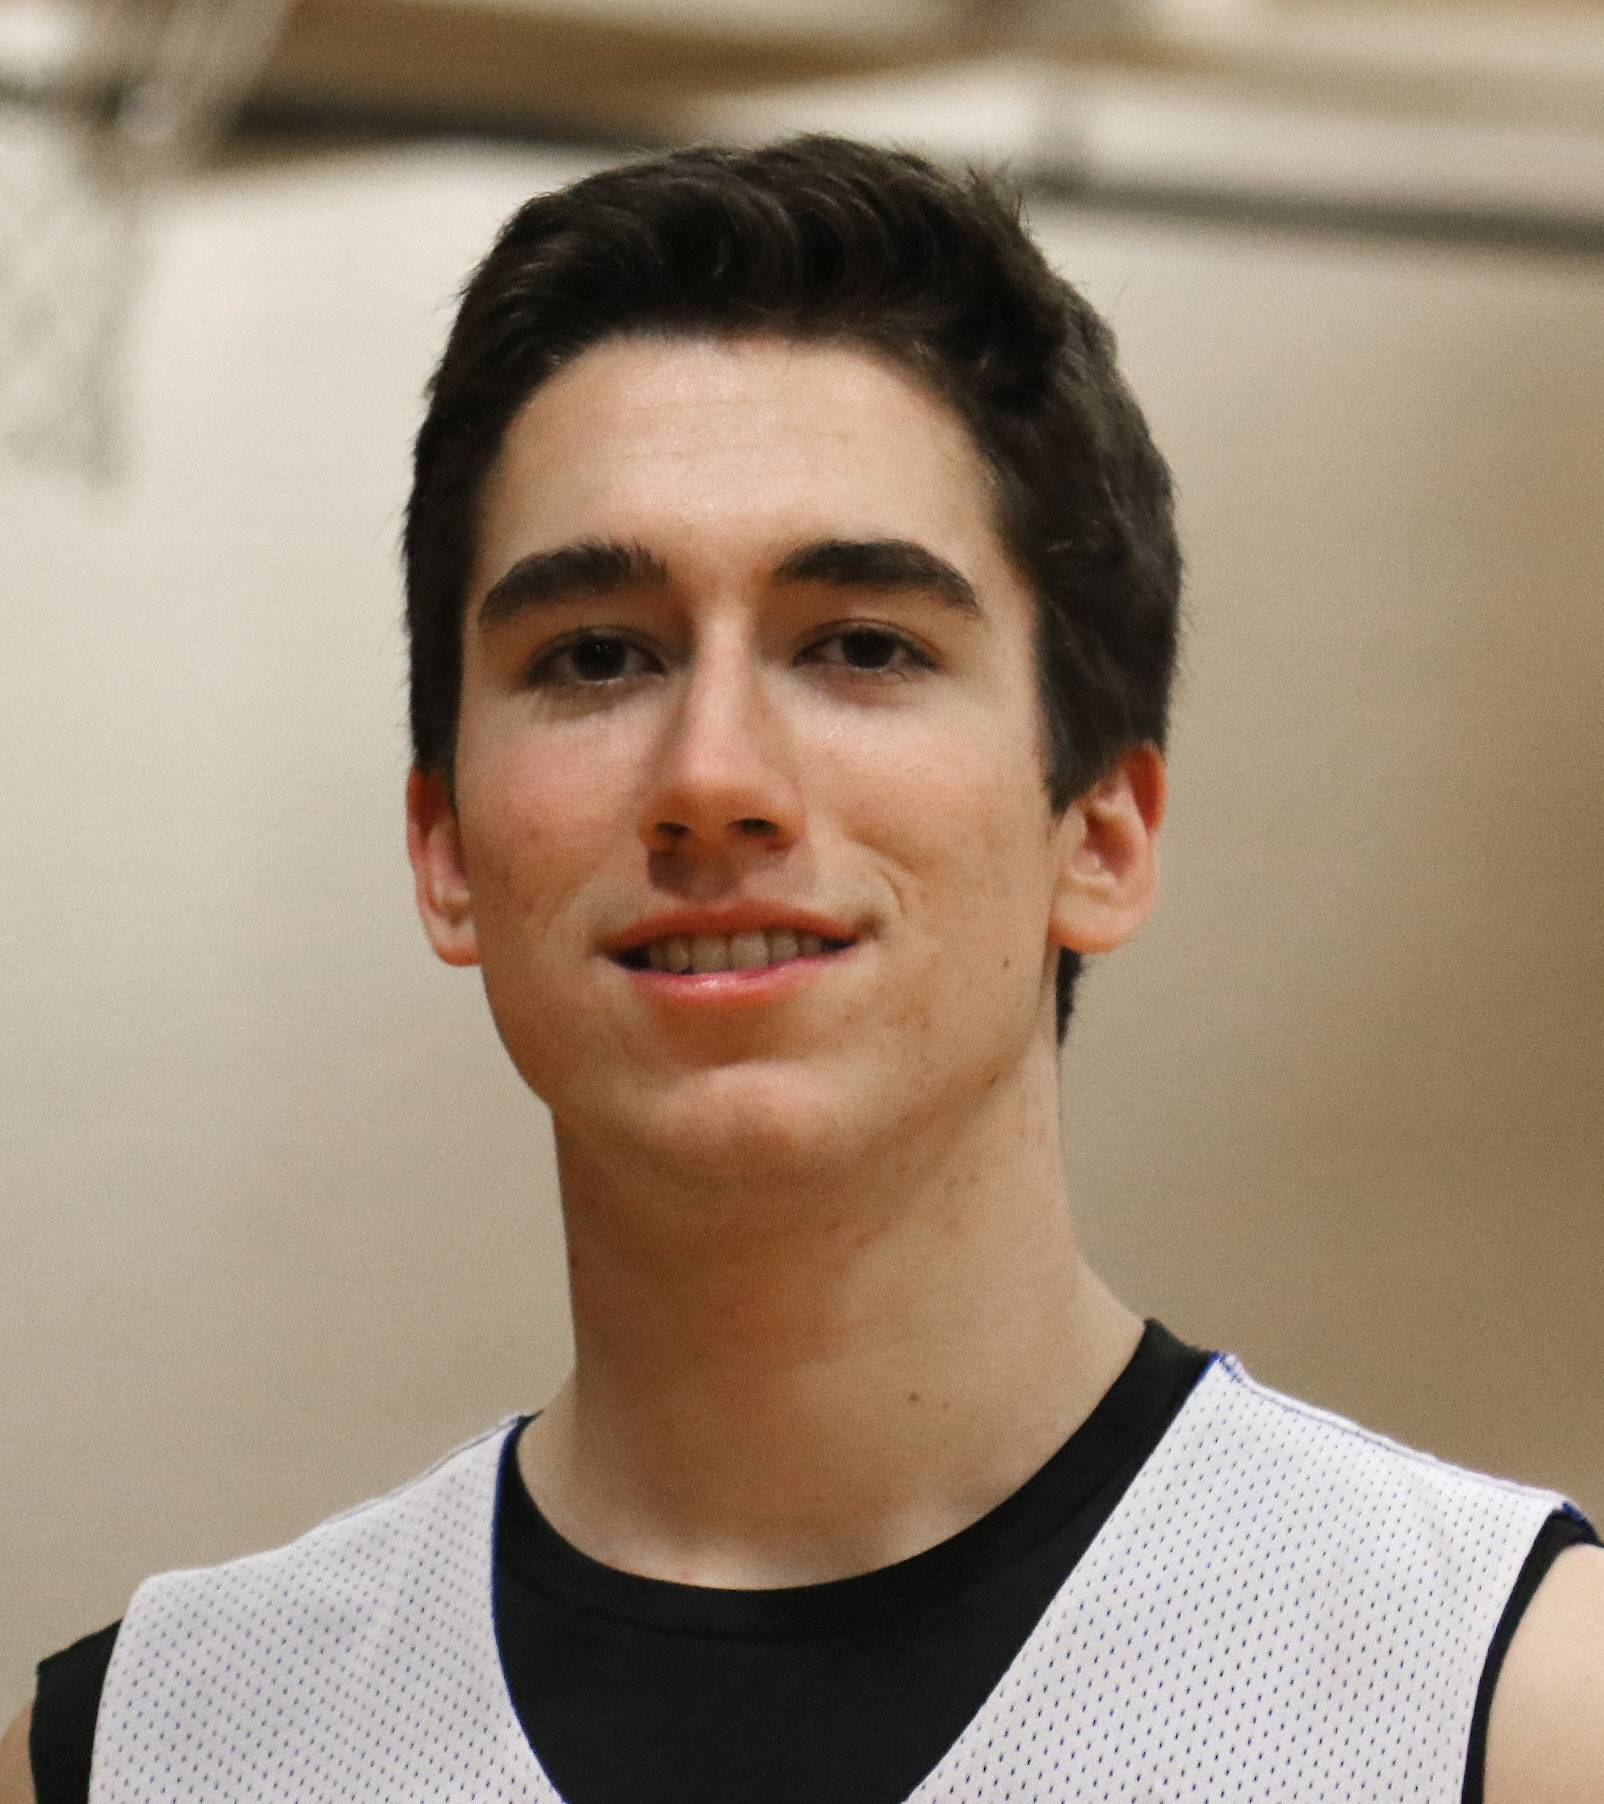 Lake Zurich basketball player Tyler Sarvady will switch to a volleyball focus in the spring.